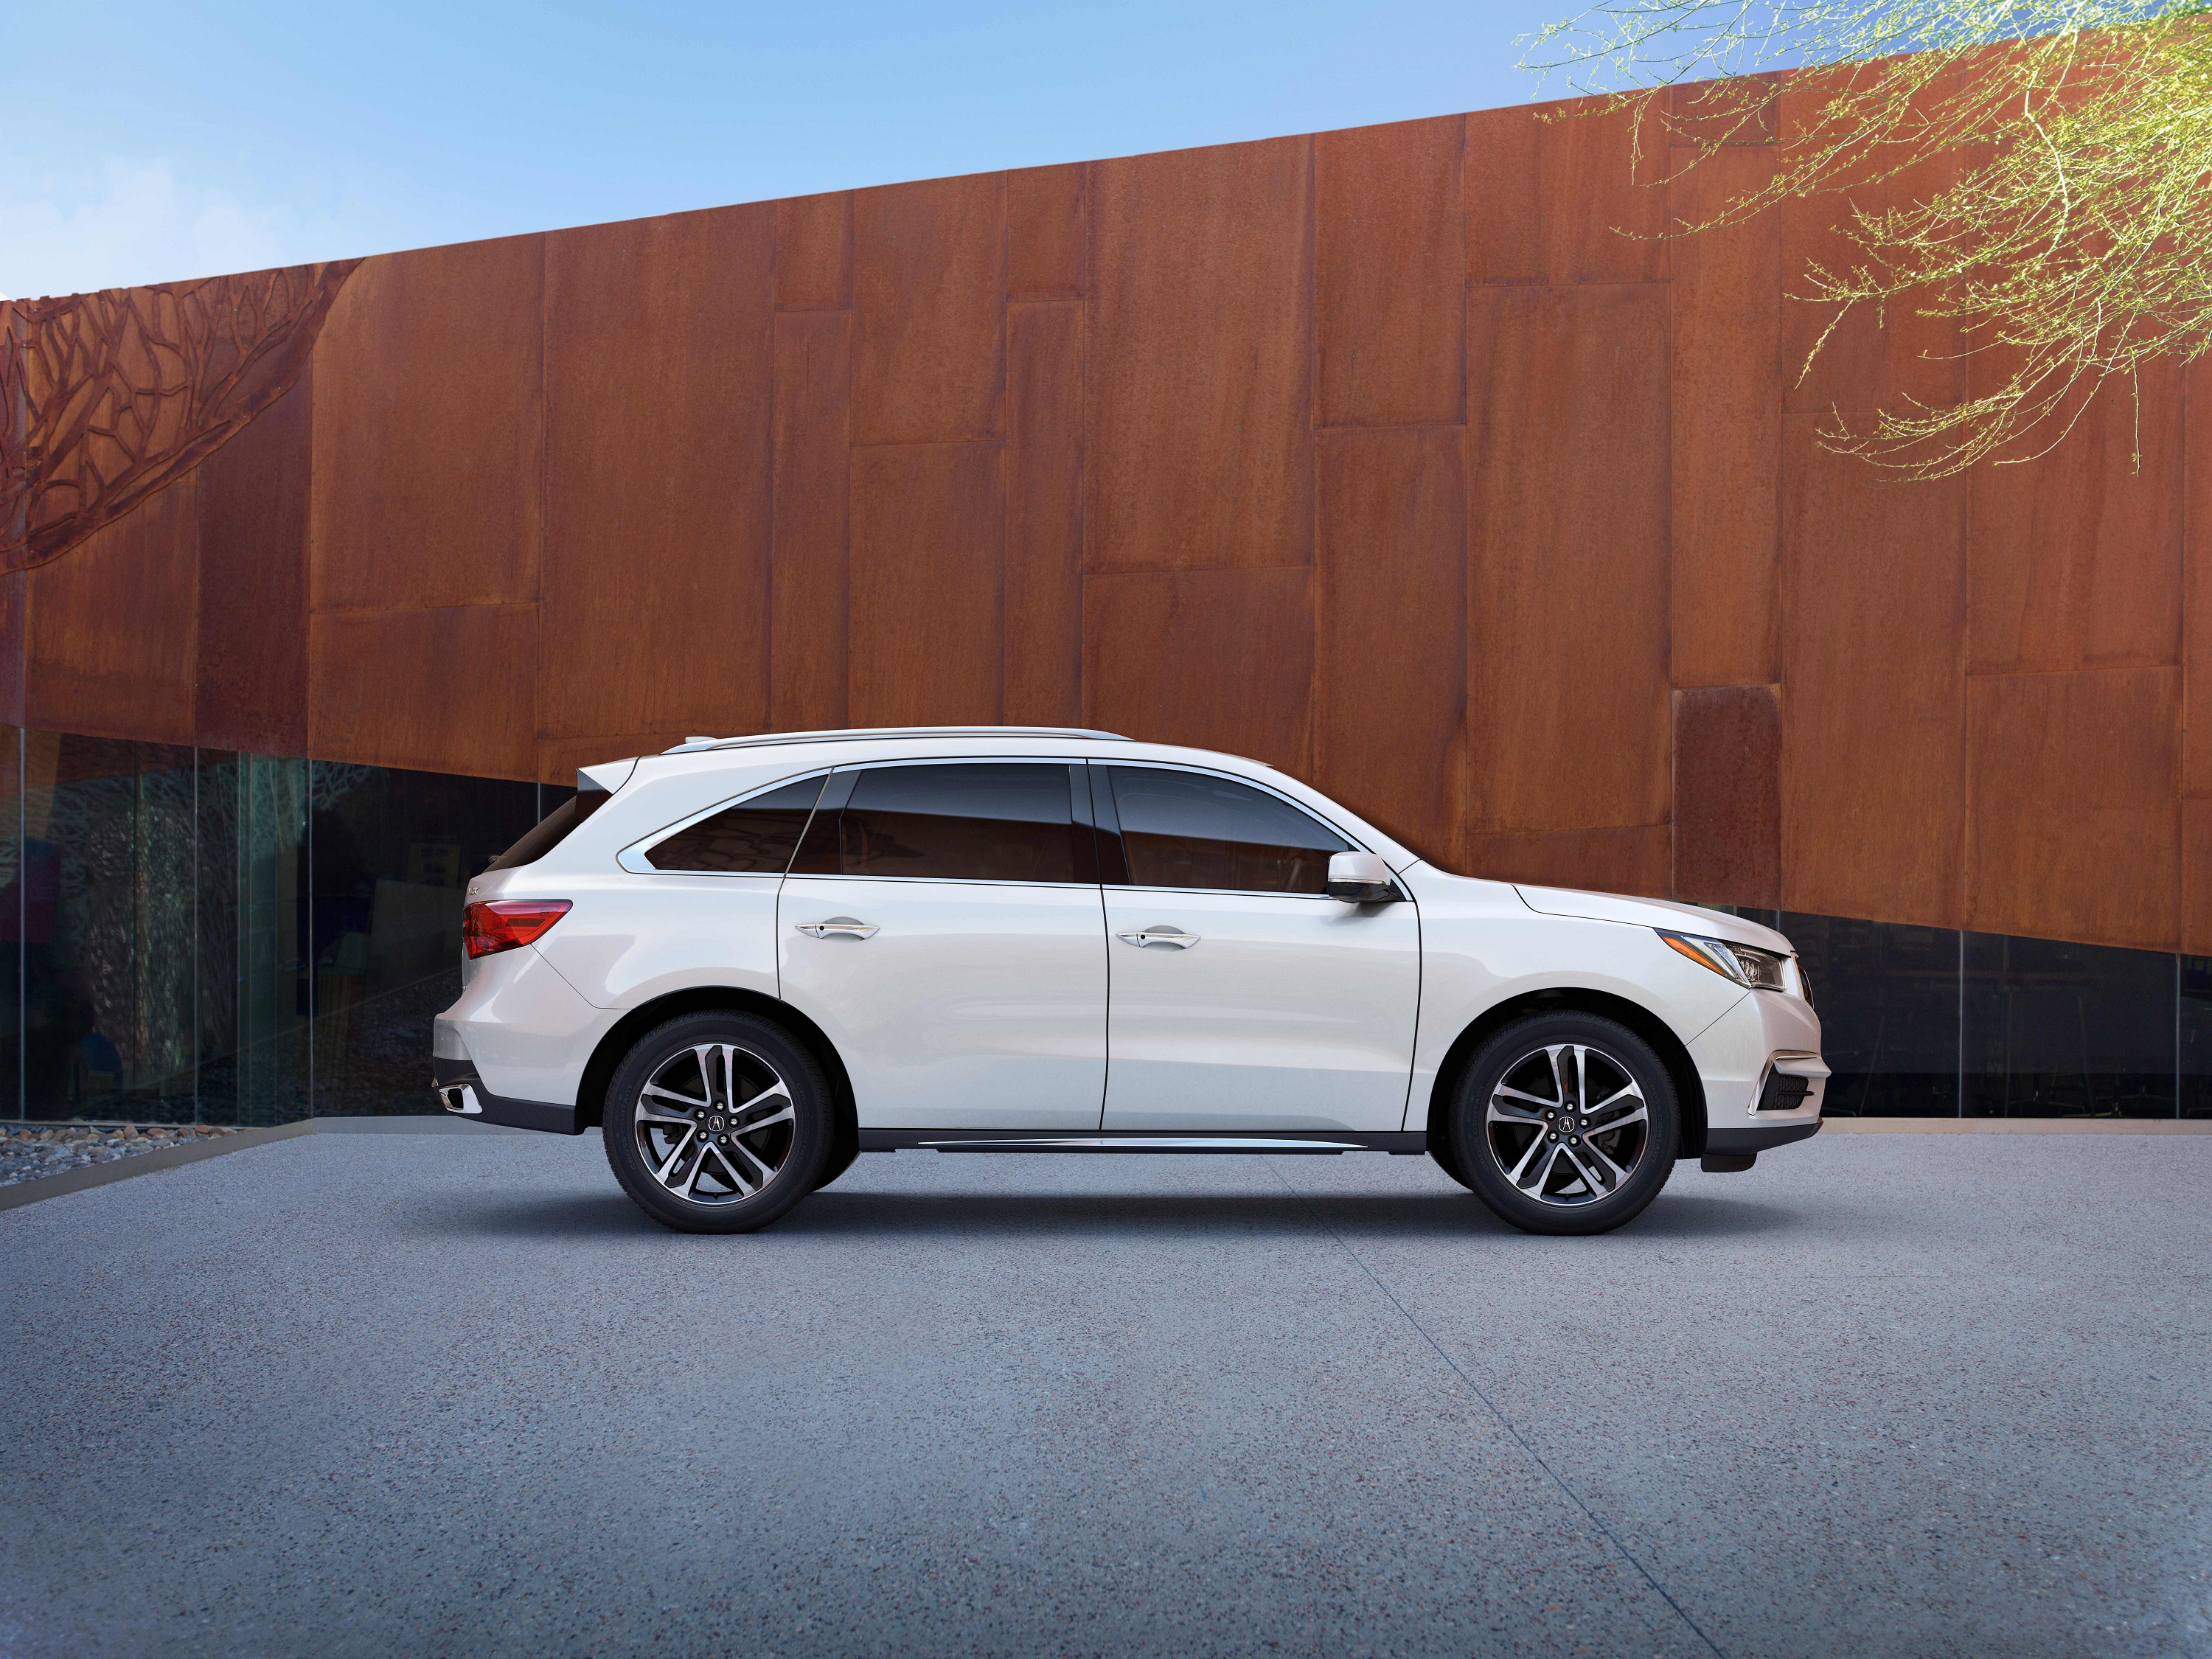 Manufacturer photo: The 2020 MDX offers a dynamic driving experience, an available A-Spec sport appearance variant and an extensive list of standard premium features and high-tech appointments on all grades, including AcuraWatch safety and driver-assistive technologies